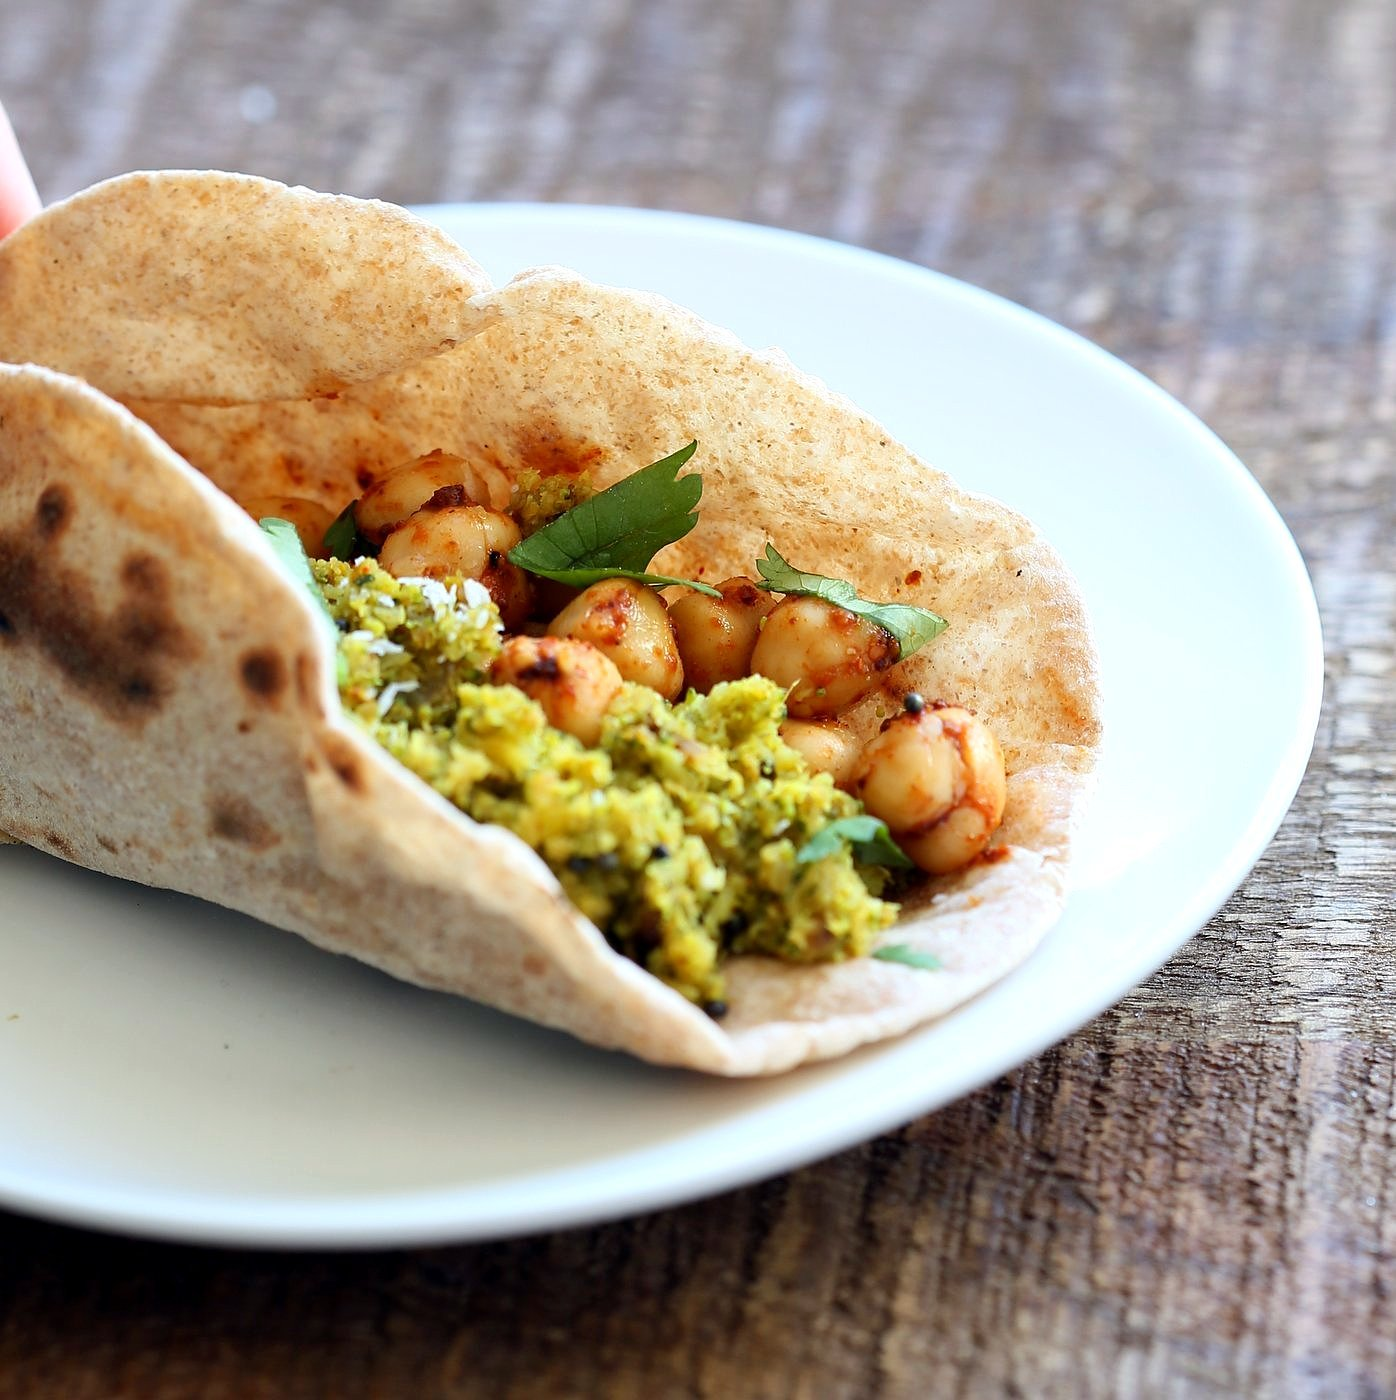 Broccoli Stir fry with Indian Spices - Broccoli Sabji with mustard seeds, coriander, fenugreek, turmeric and cinnamon. 1 pot, 20 mins. #Vegan #Glutenfree #Soyfree #Broccoli #Recipe. Serve as a side, or with dal, or fill up a taco or wrap.   VeganRicha.com